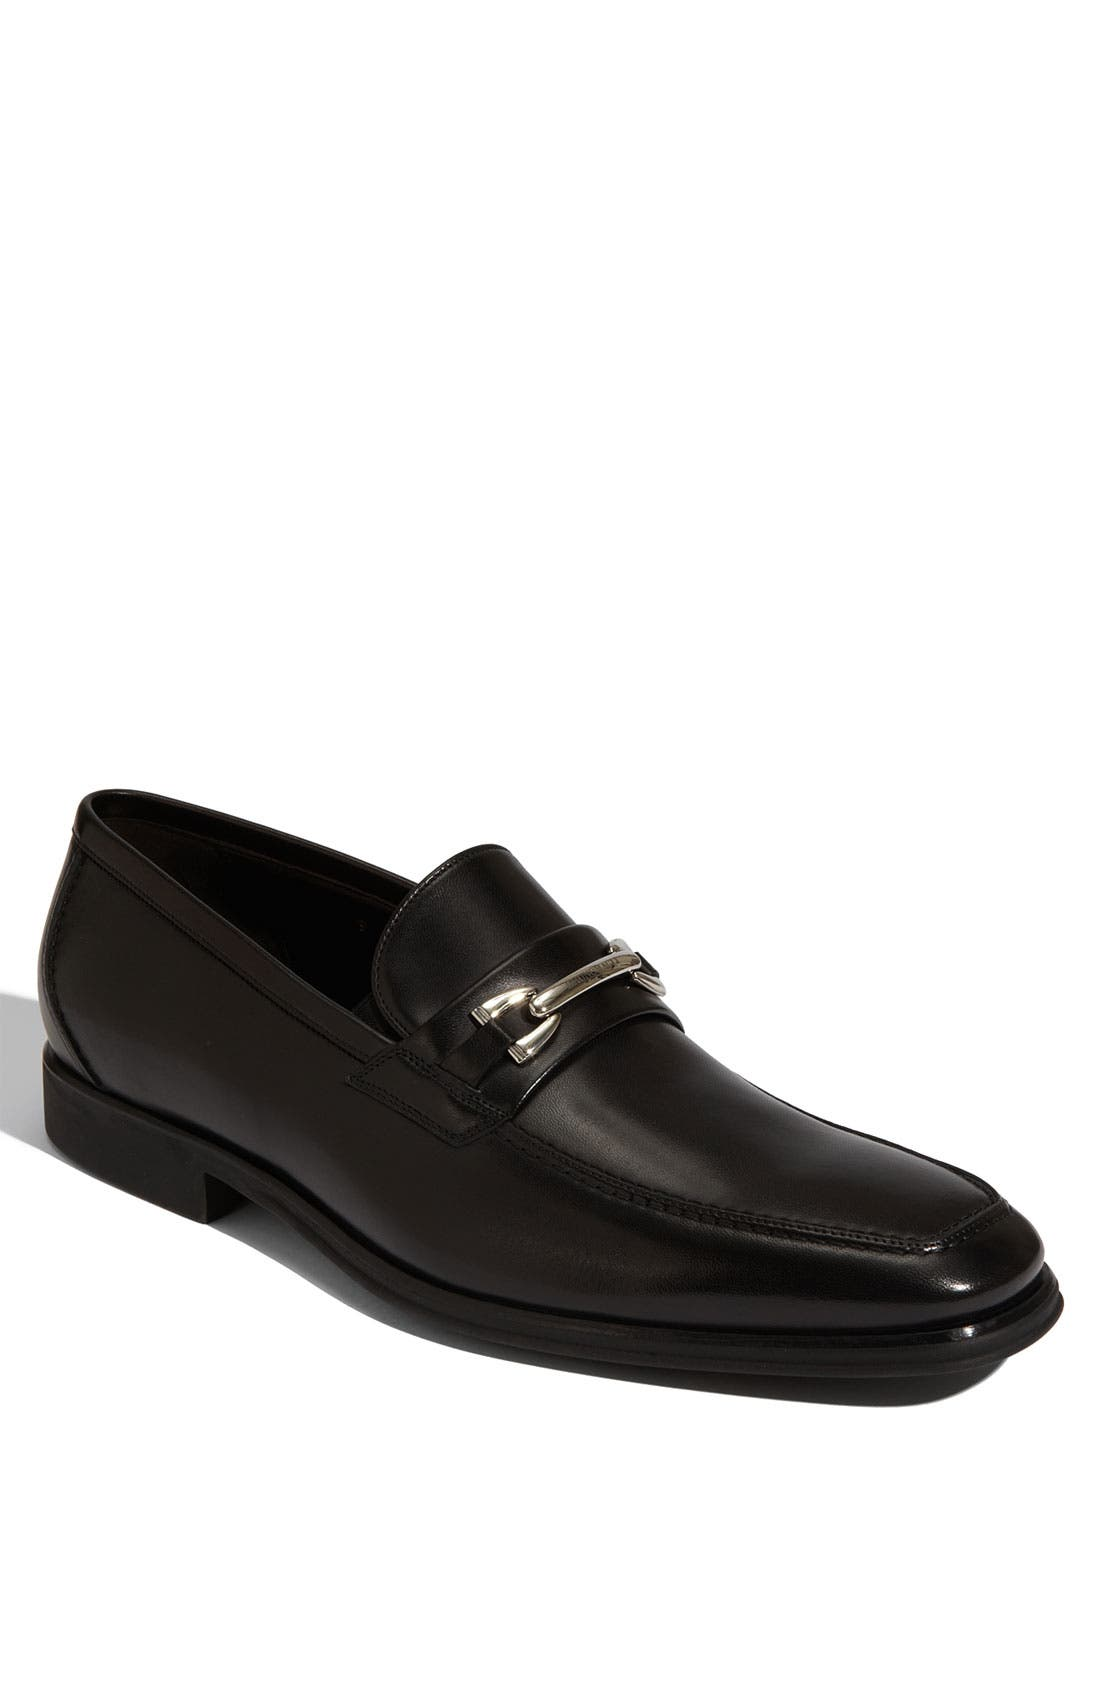 Alternate Image 1 Selected - Bruno Magli 'Renegade' Loafer (Men)